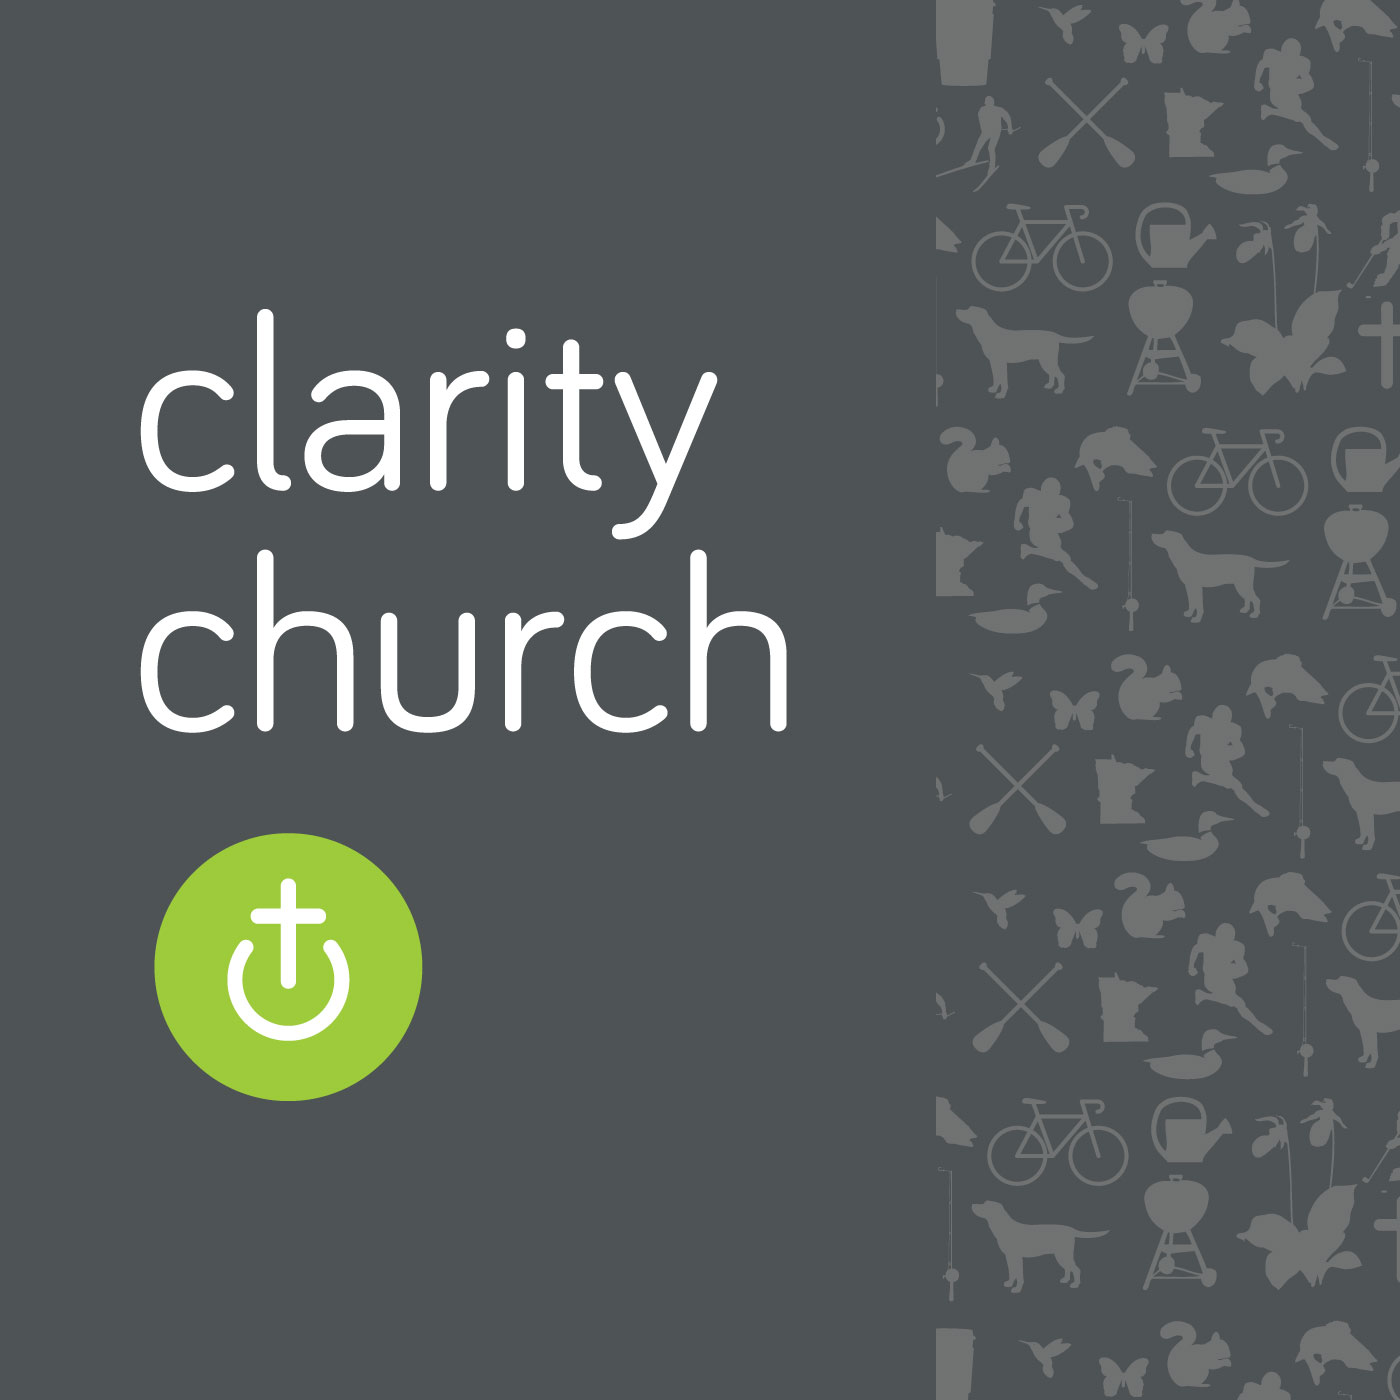 Clarity Church Podcast - clarity church